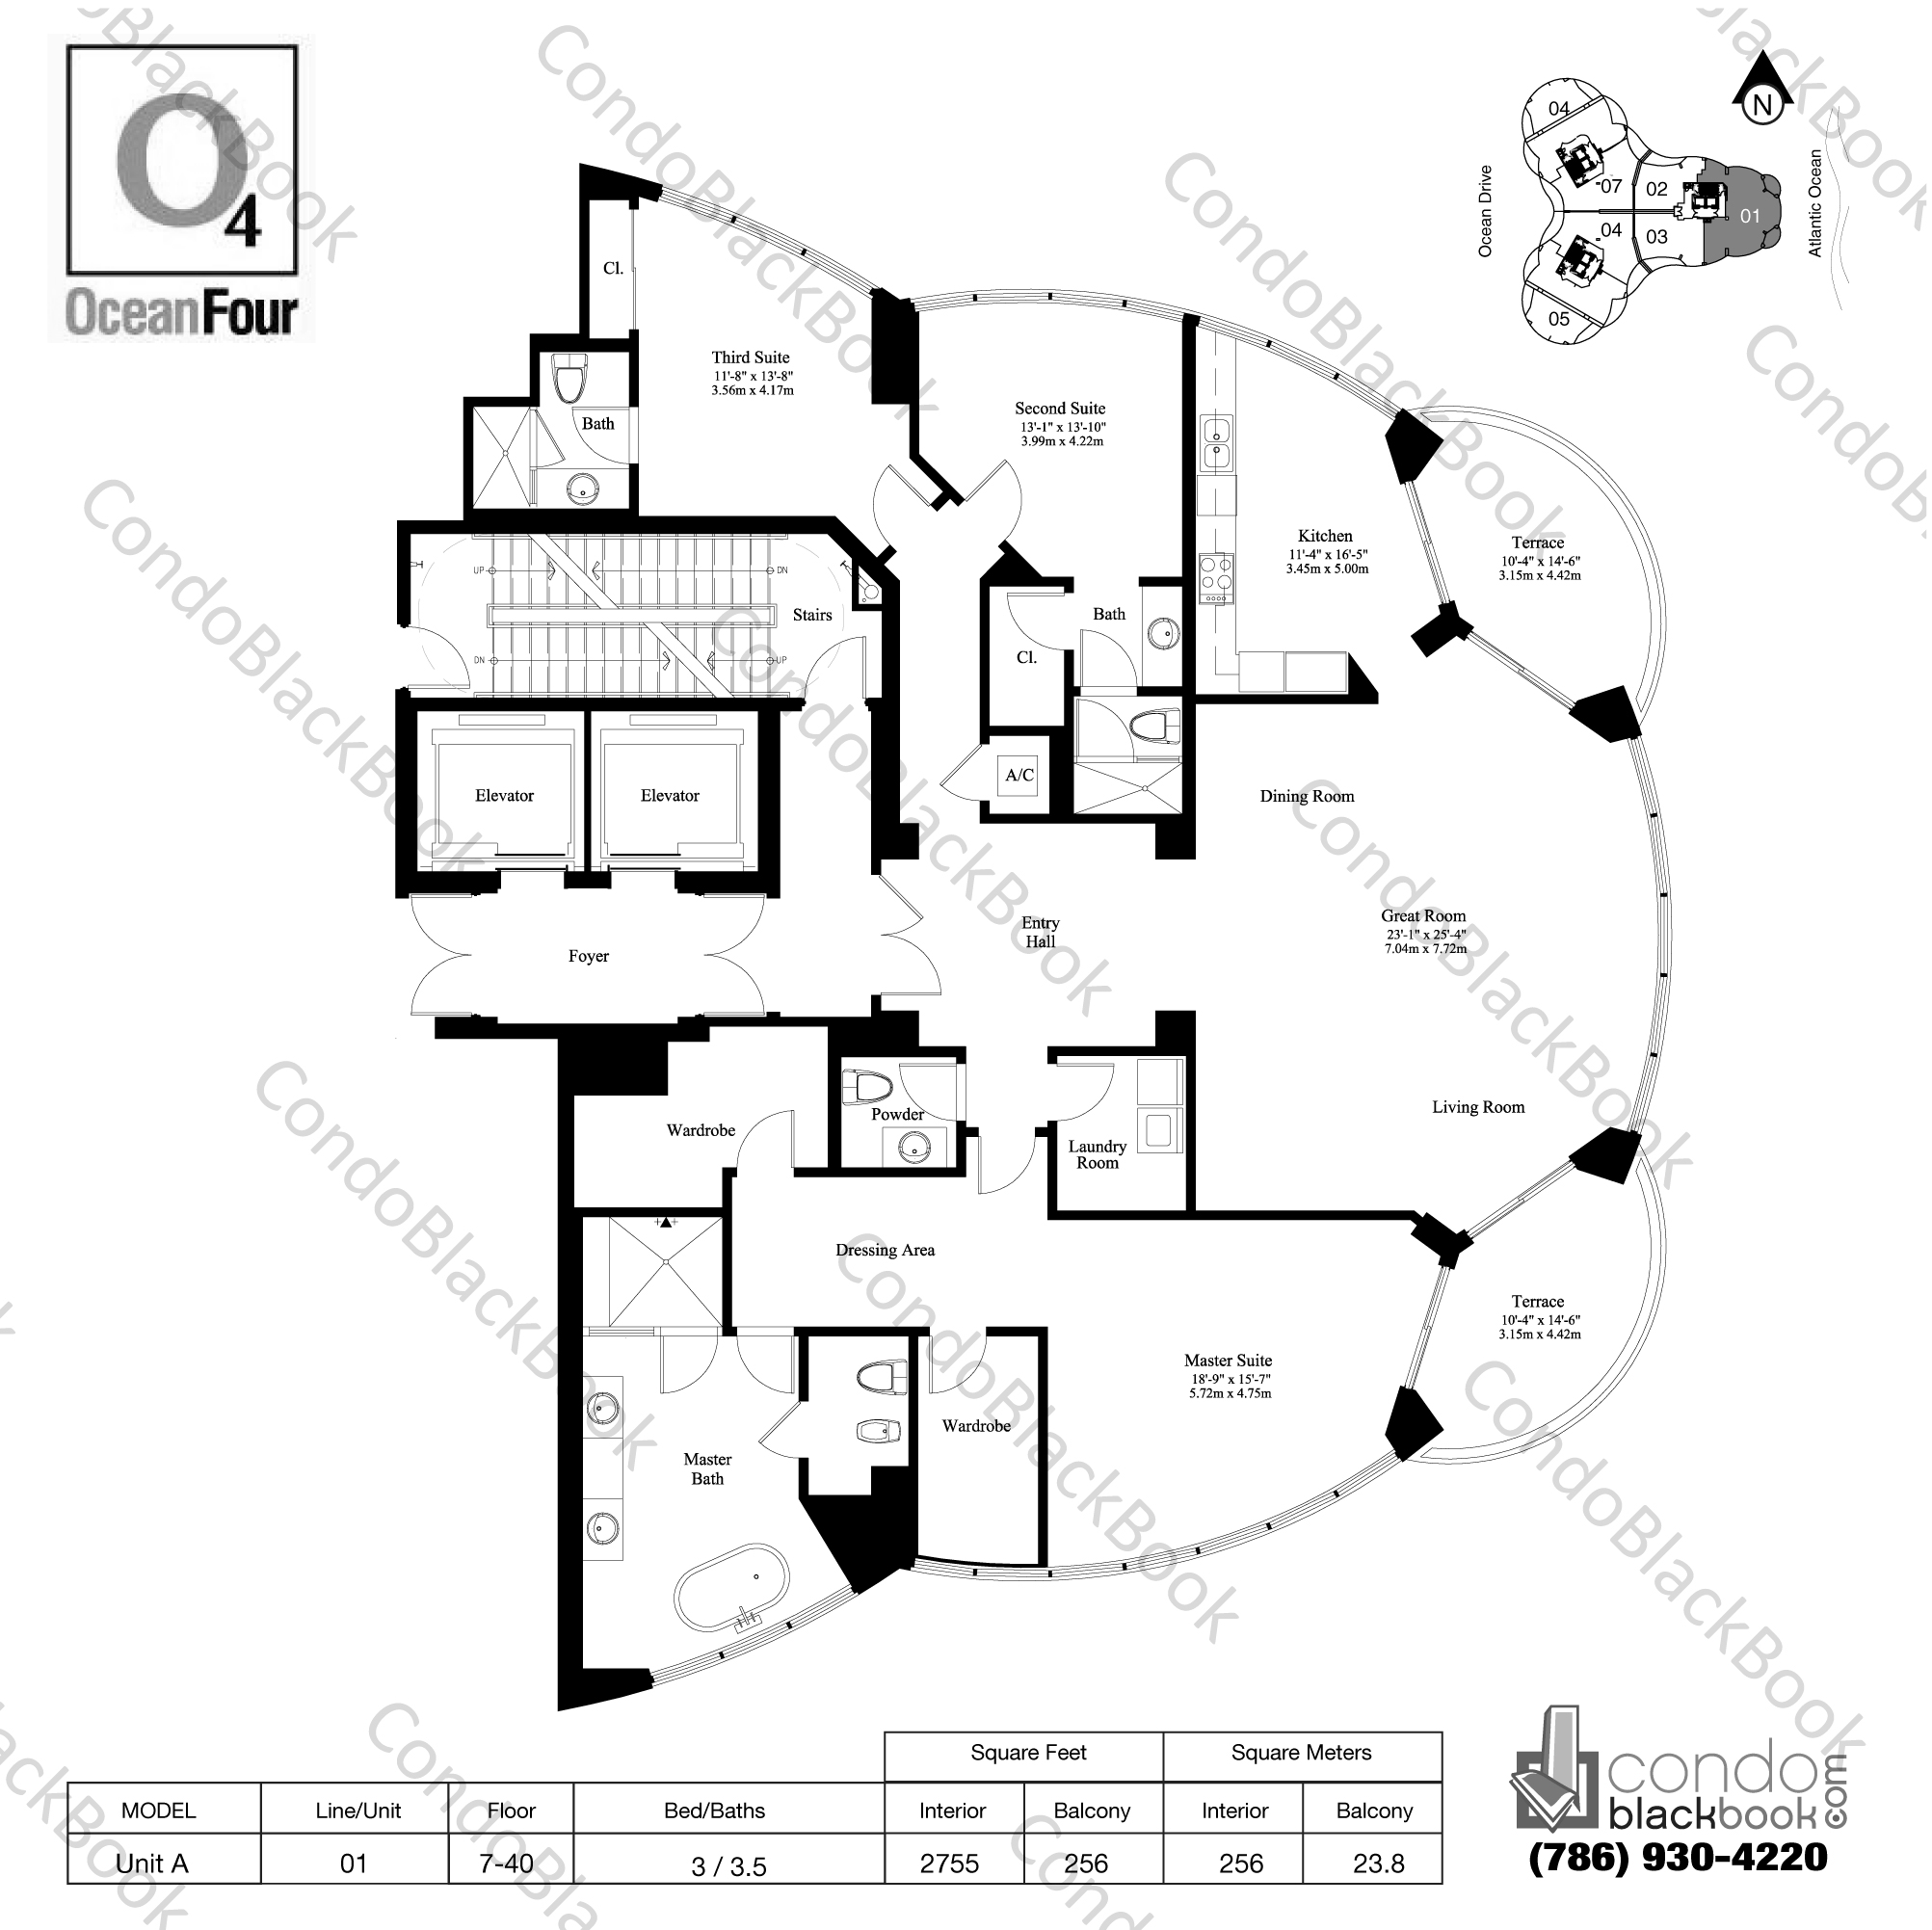 Floor plan for Ocean Four Sunny Isles Beach, model Unit A, line 01, 3 / 3.5 bedrooms, 2755 sq ft